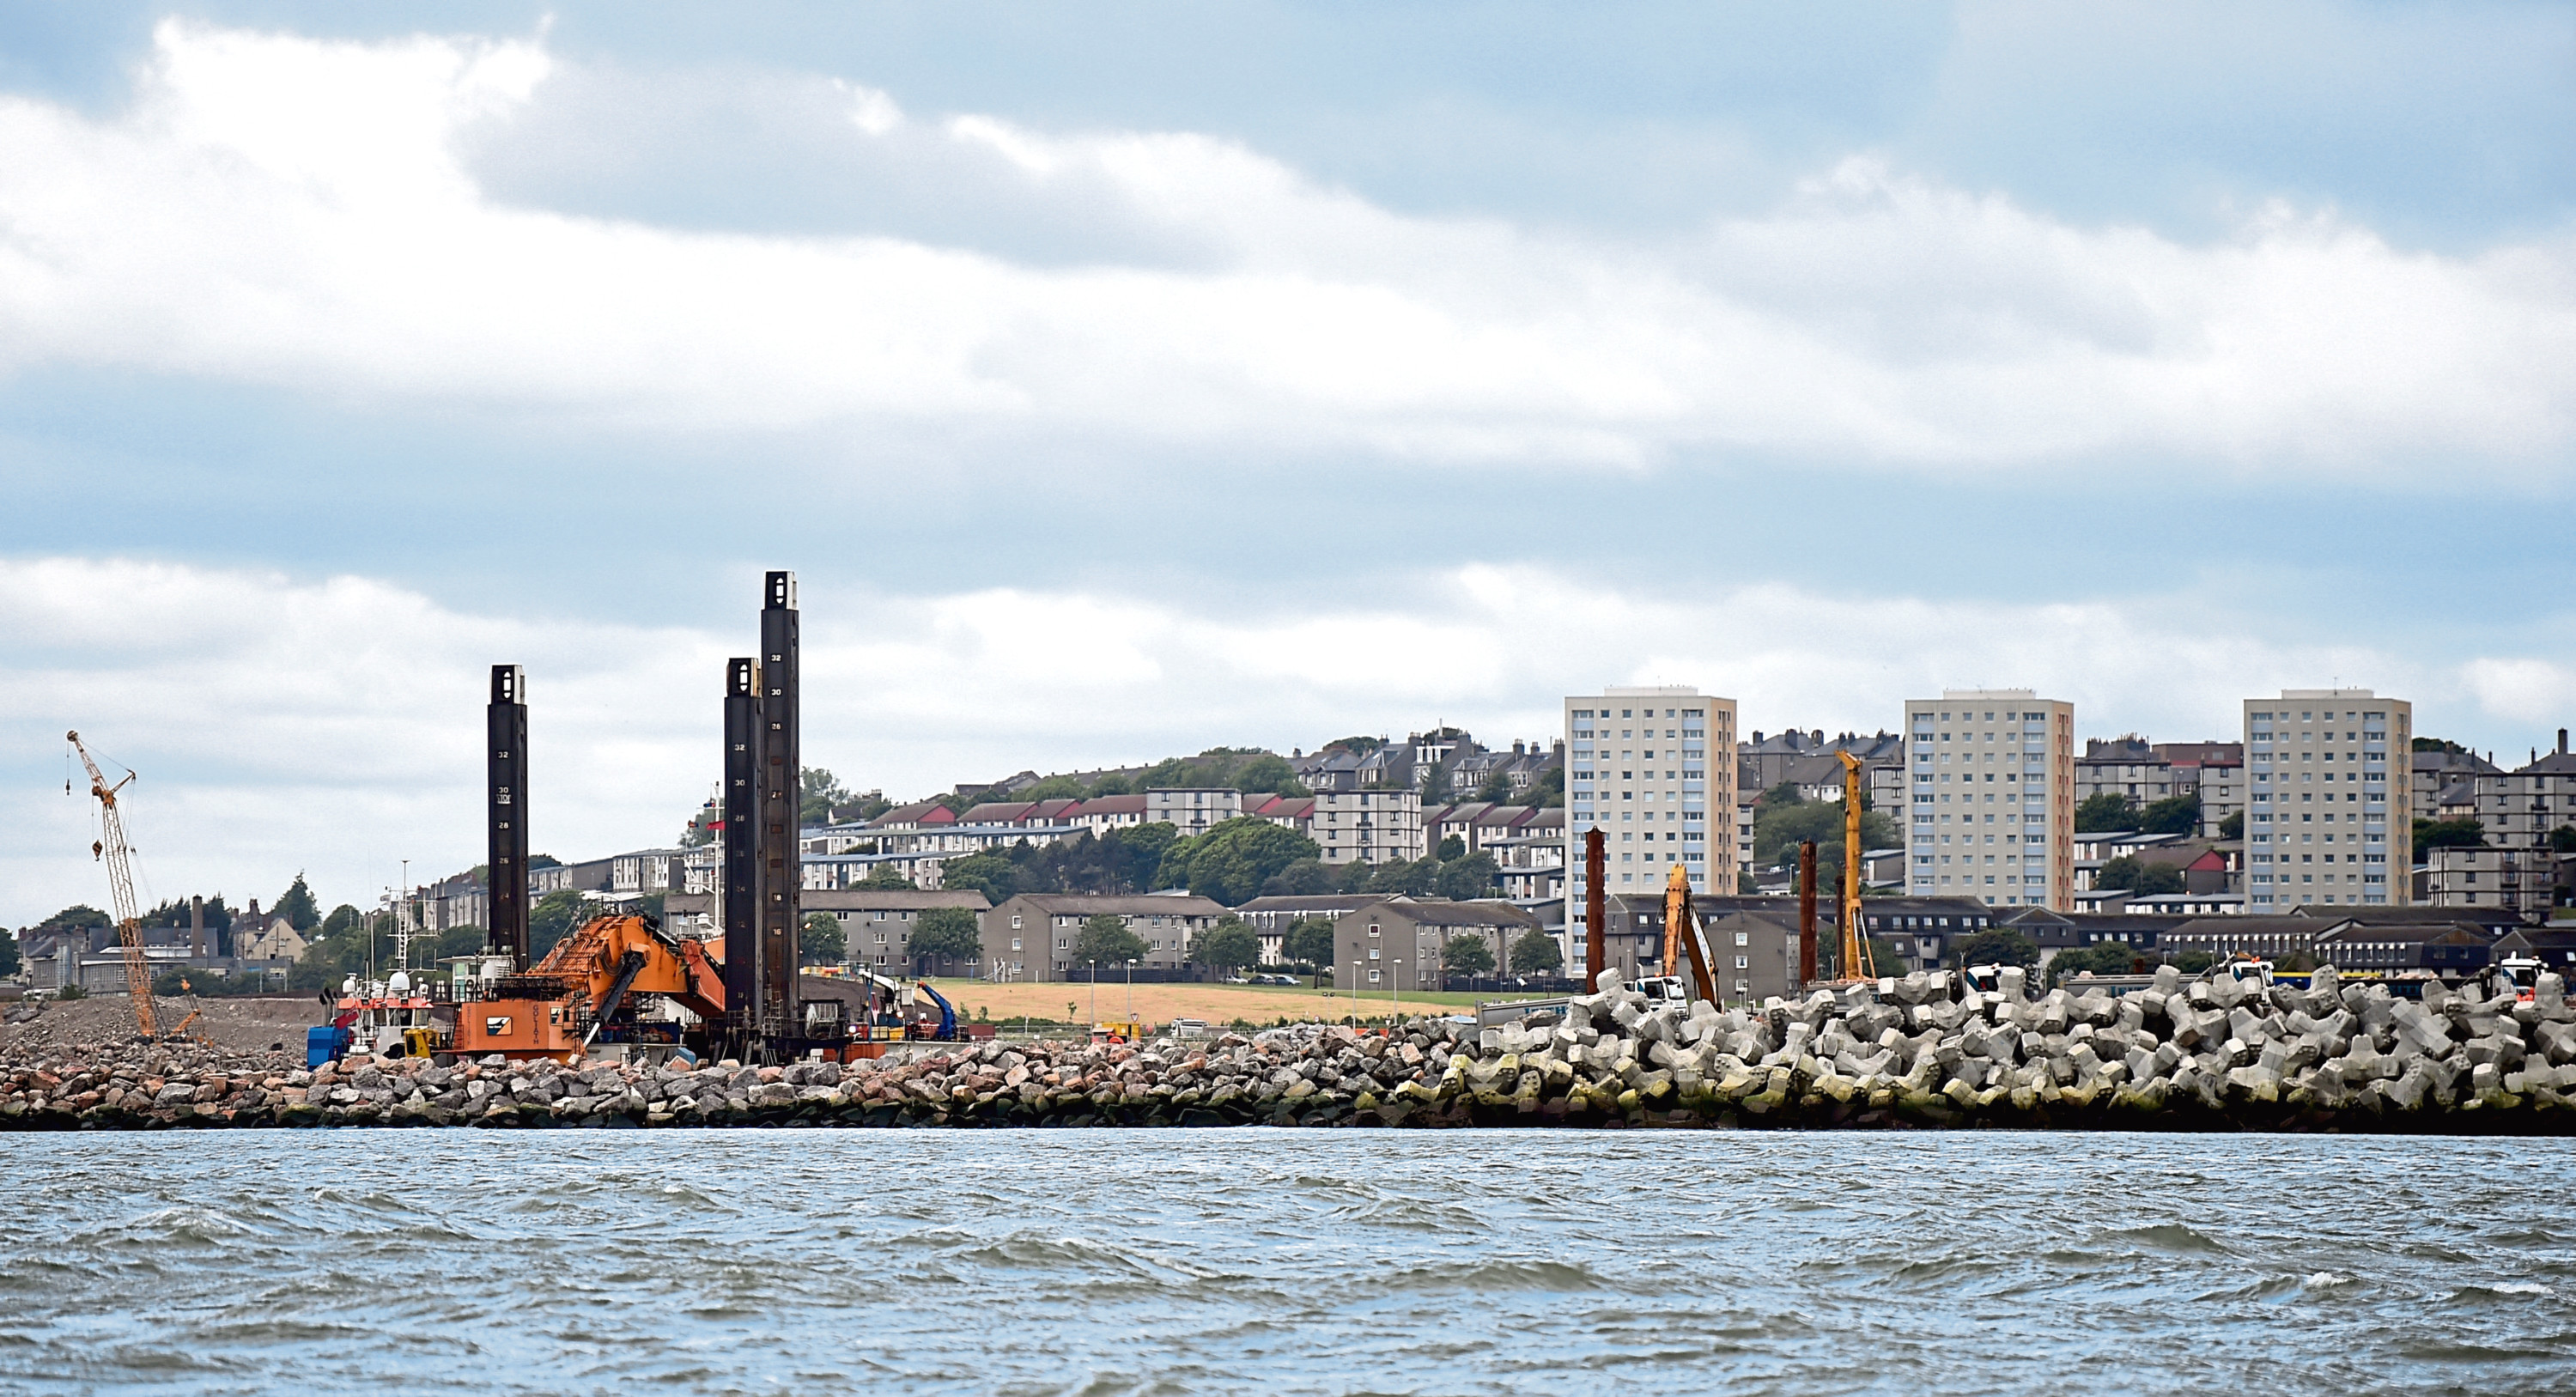 Work is ongoing on the new harbour